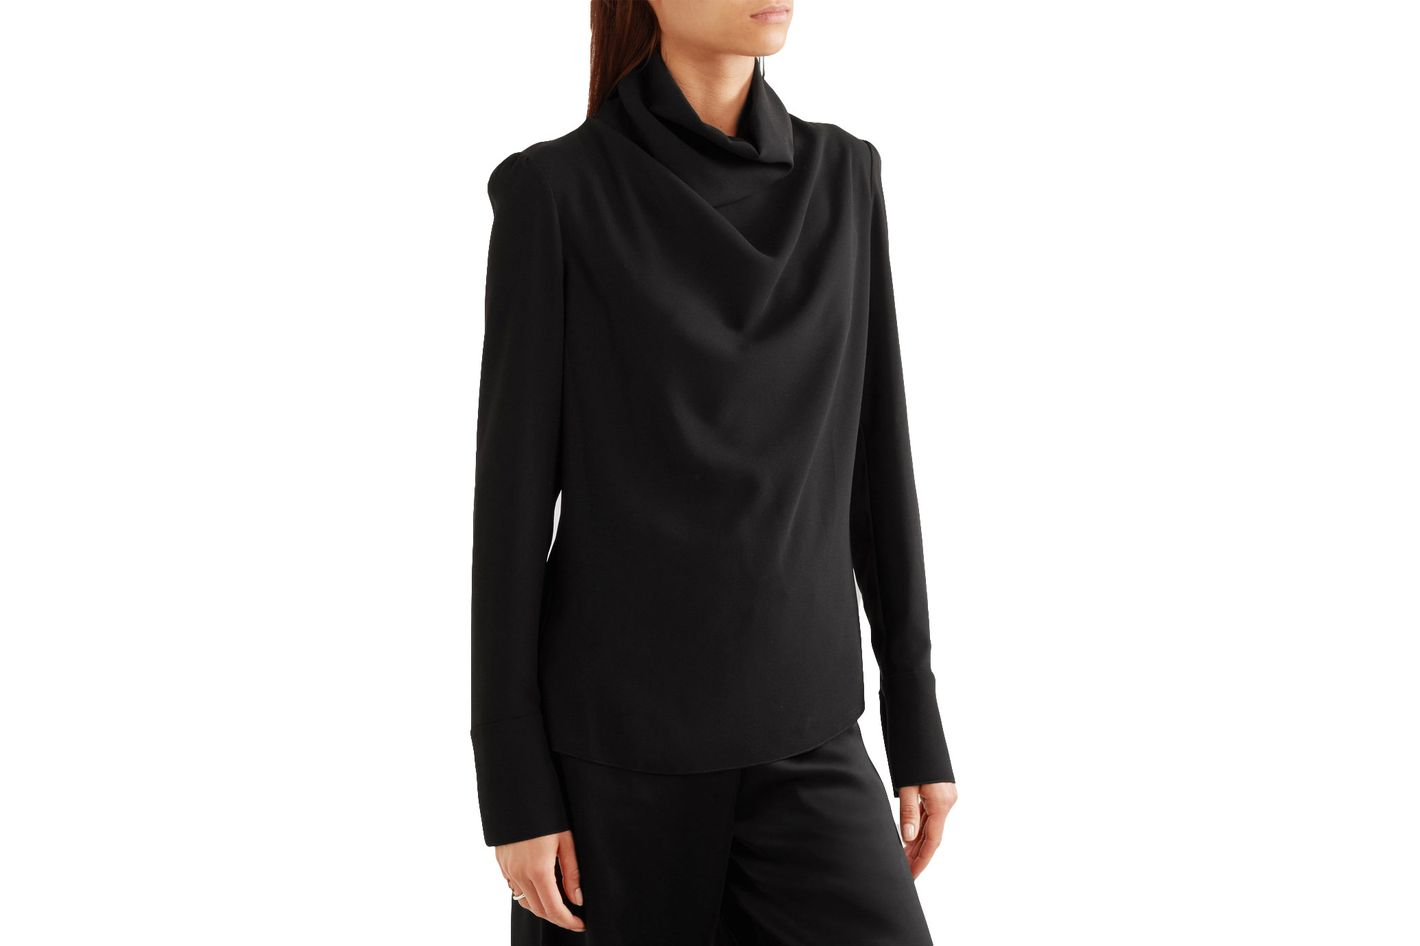 Maison Margiela Draped Crepe Blouse